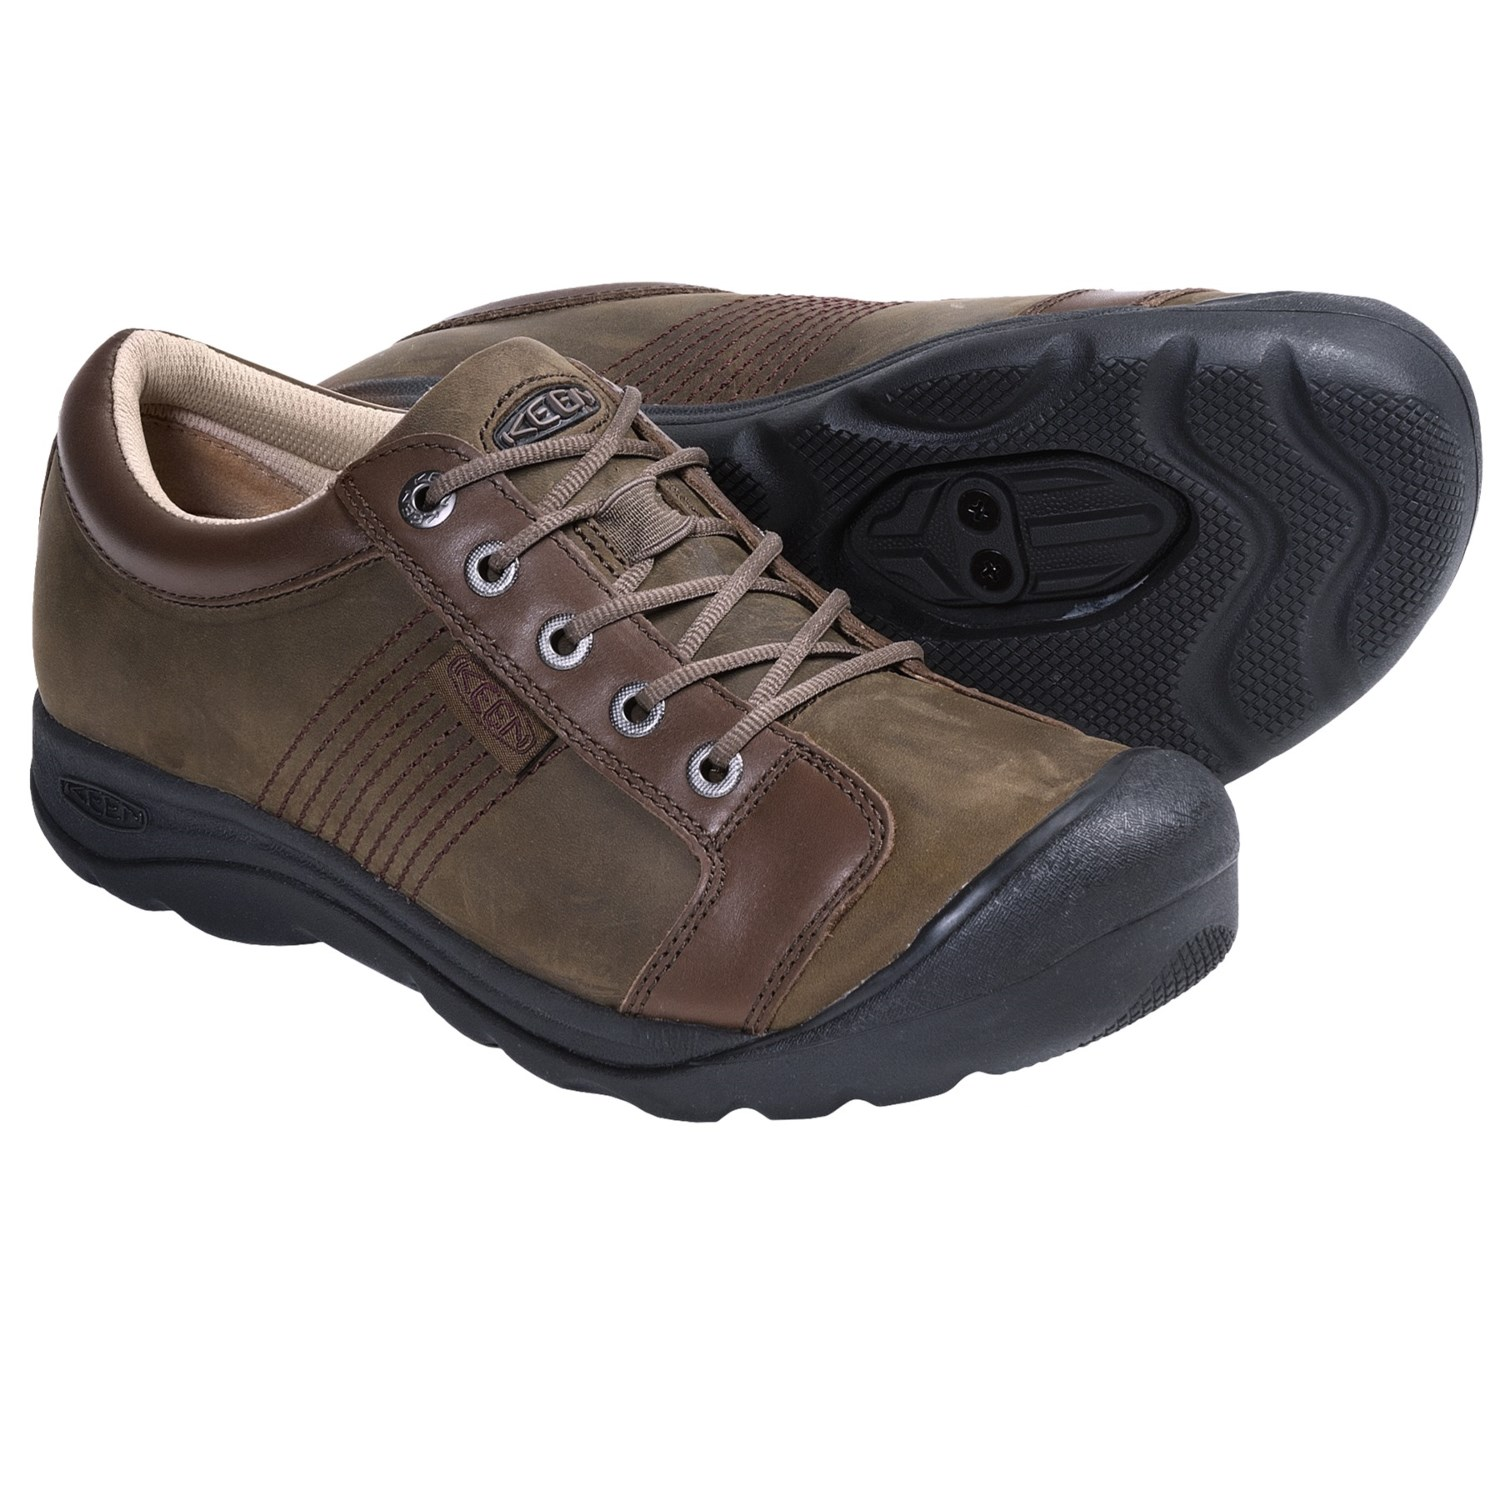 keen pedal lace up shoes spd compatible for